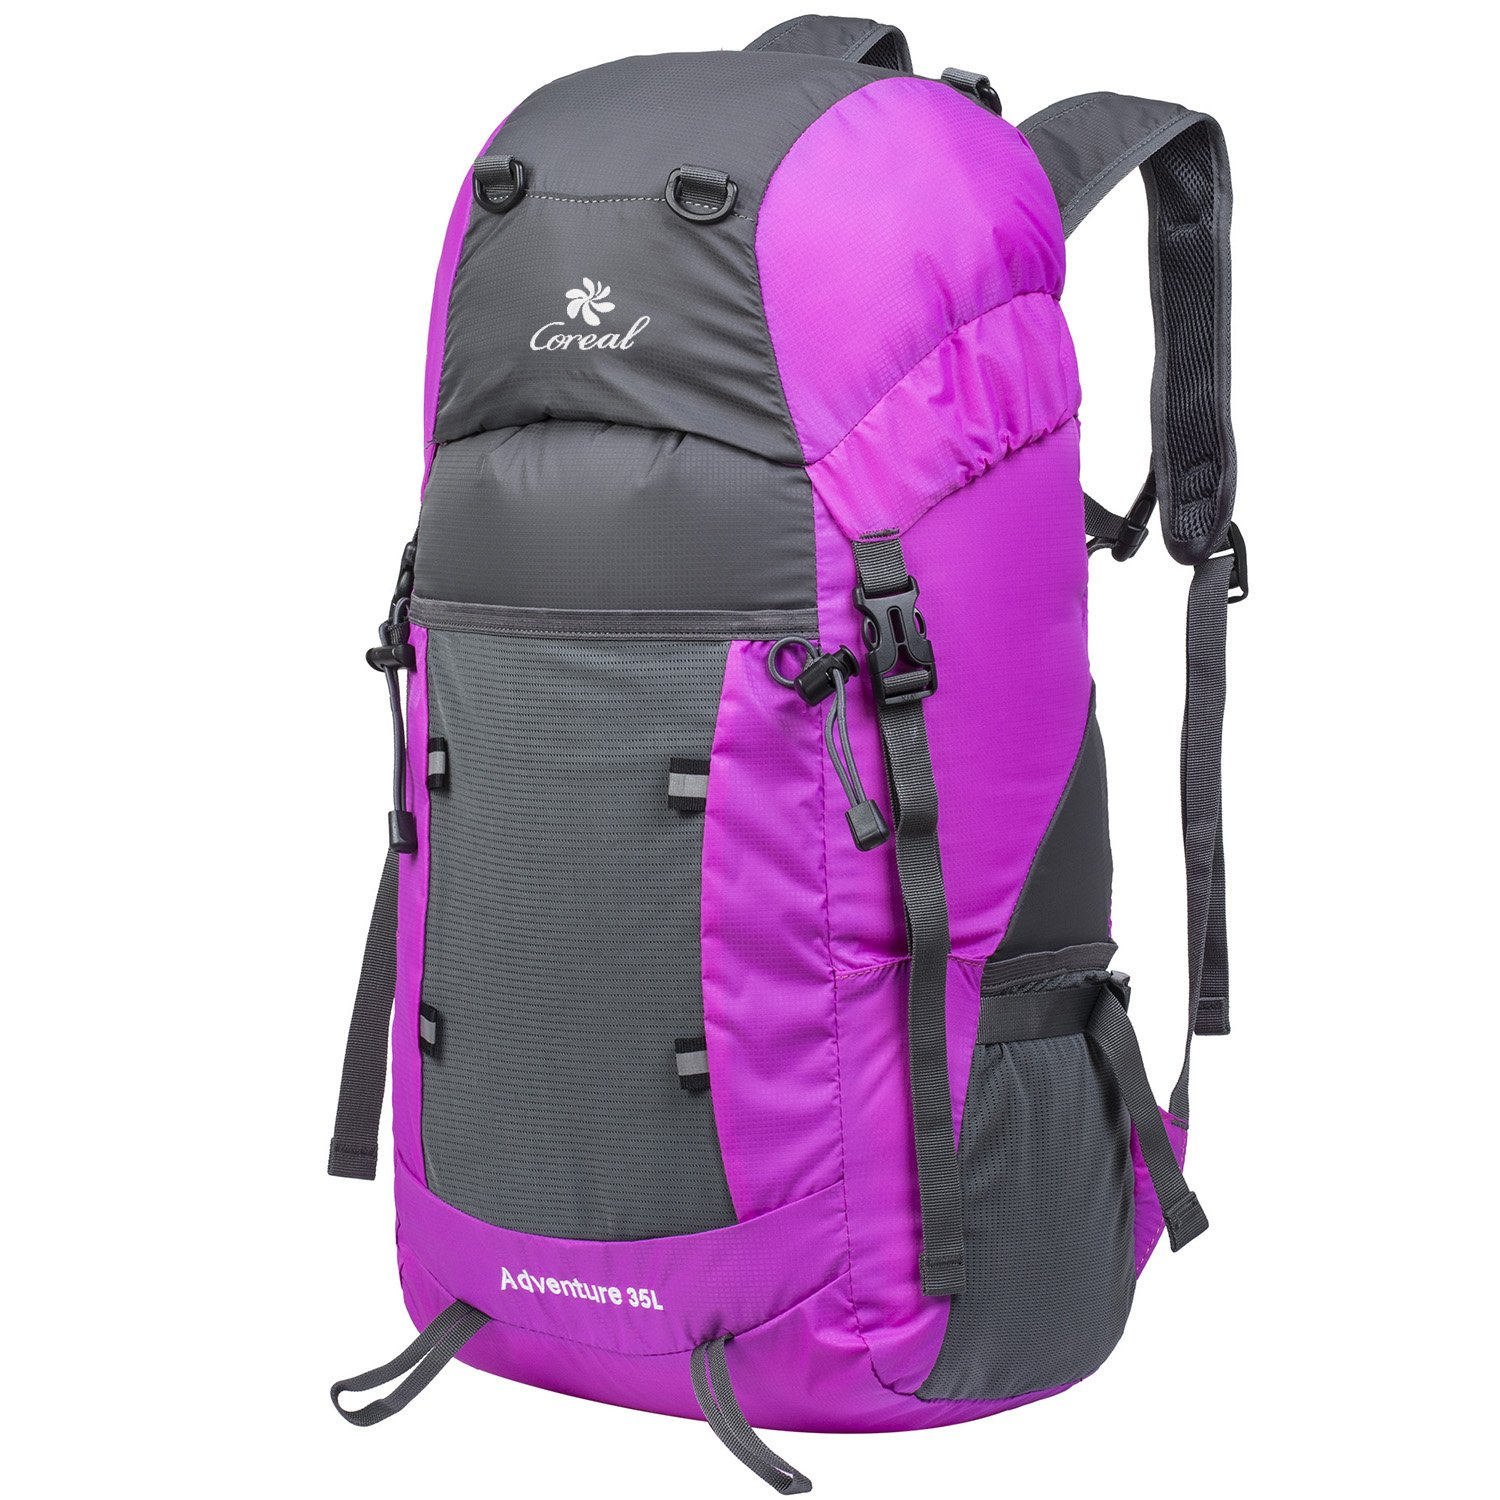 Coreal Hiking Foldable Backpack Packable Lightweight Daypack 35L Women and Men Pink